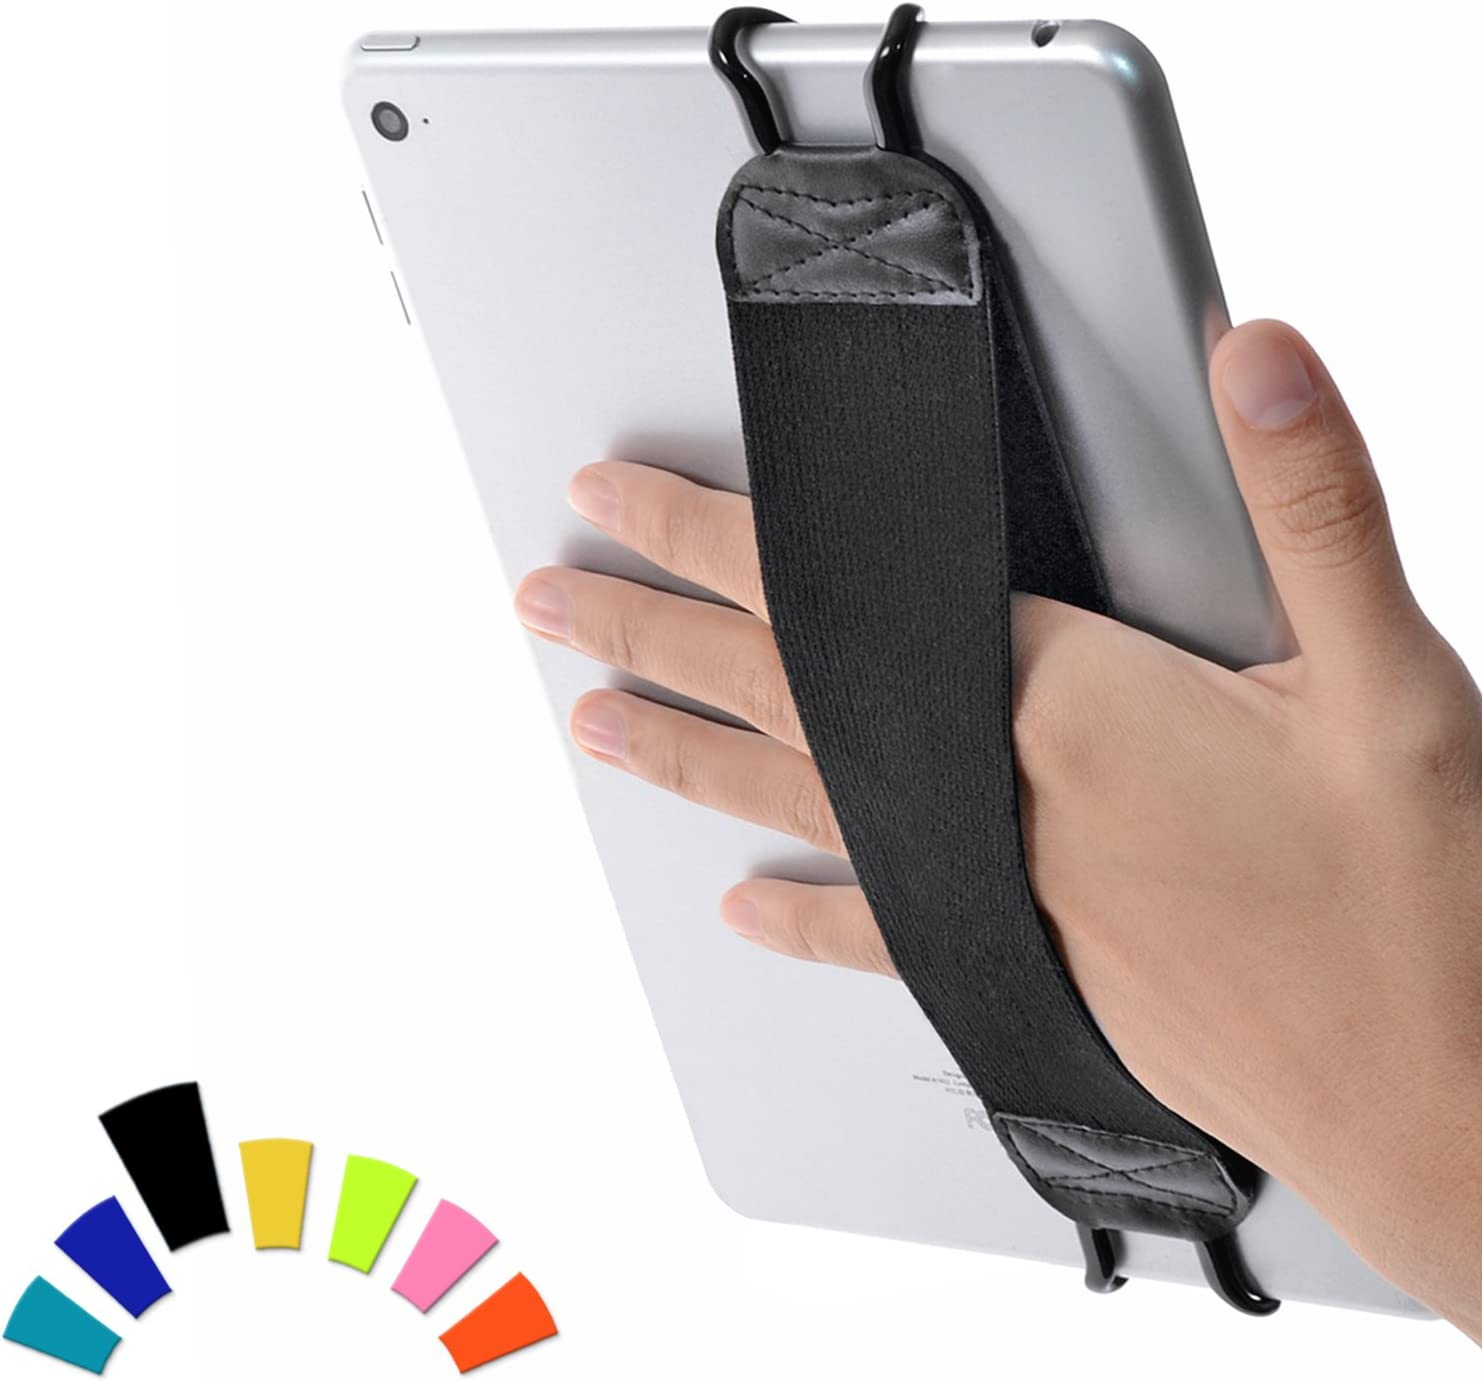 "TFY Security Hand Strap Holder for Tablets, iPad, e-Readers - Apple iPad, iPad 4 (iPad 2 & 3), iPad Air (iPad Air 2), iPad Mini - iPad Pro 9.7"" - Samsung Galaxy Tab - Google Nexus and More"